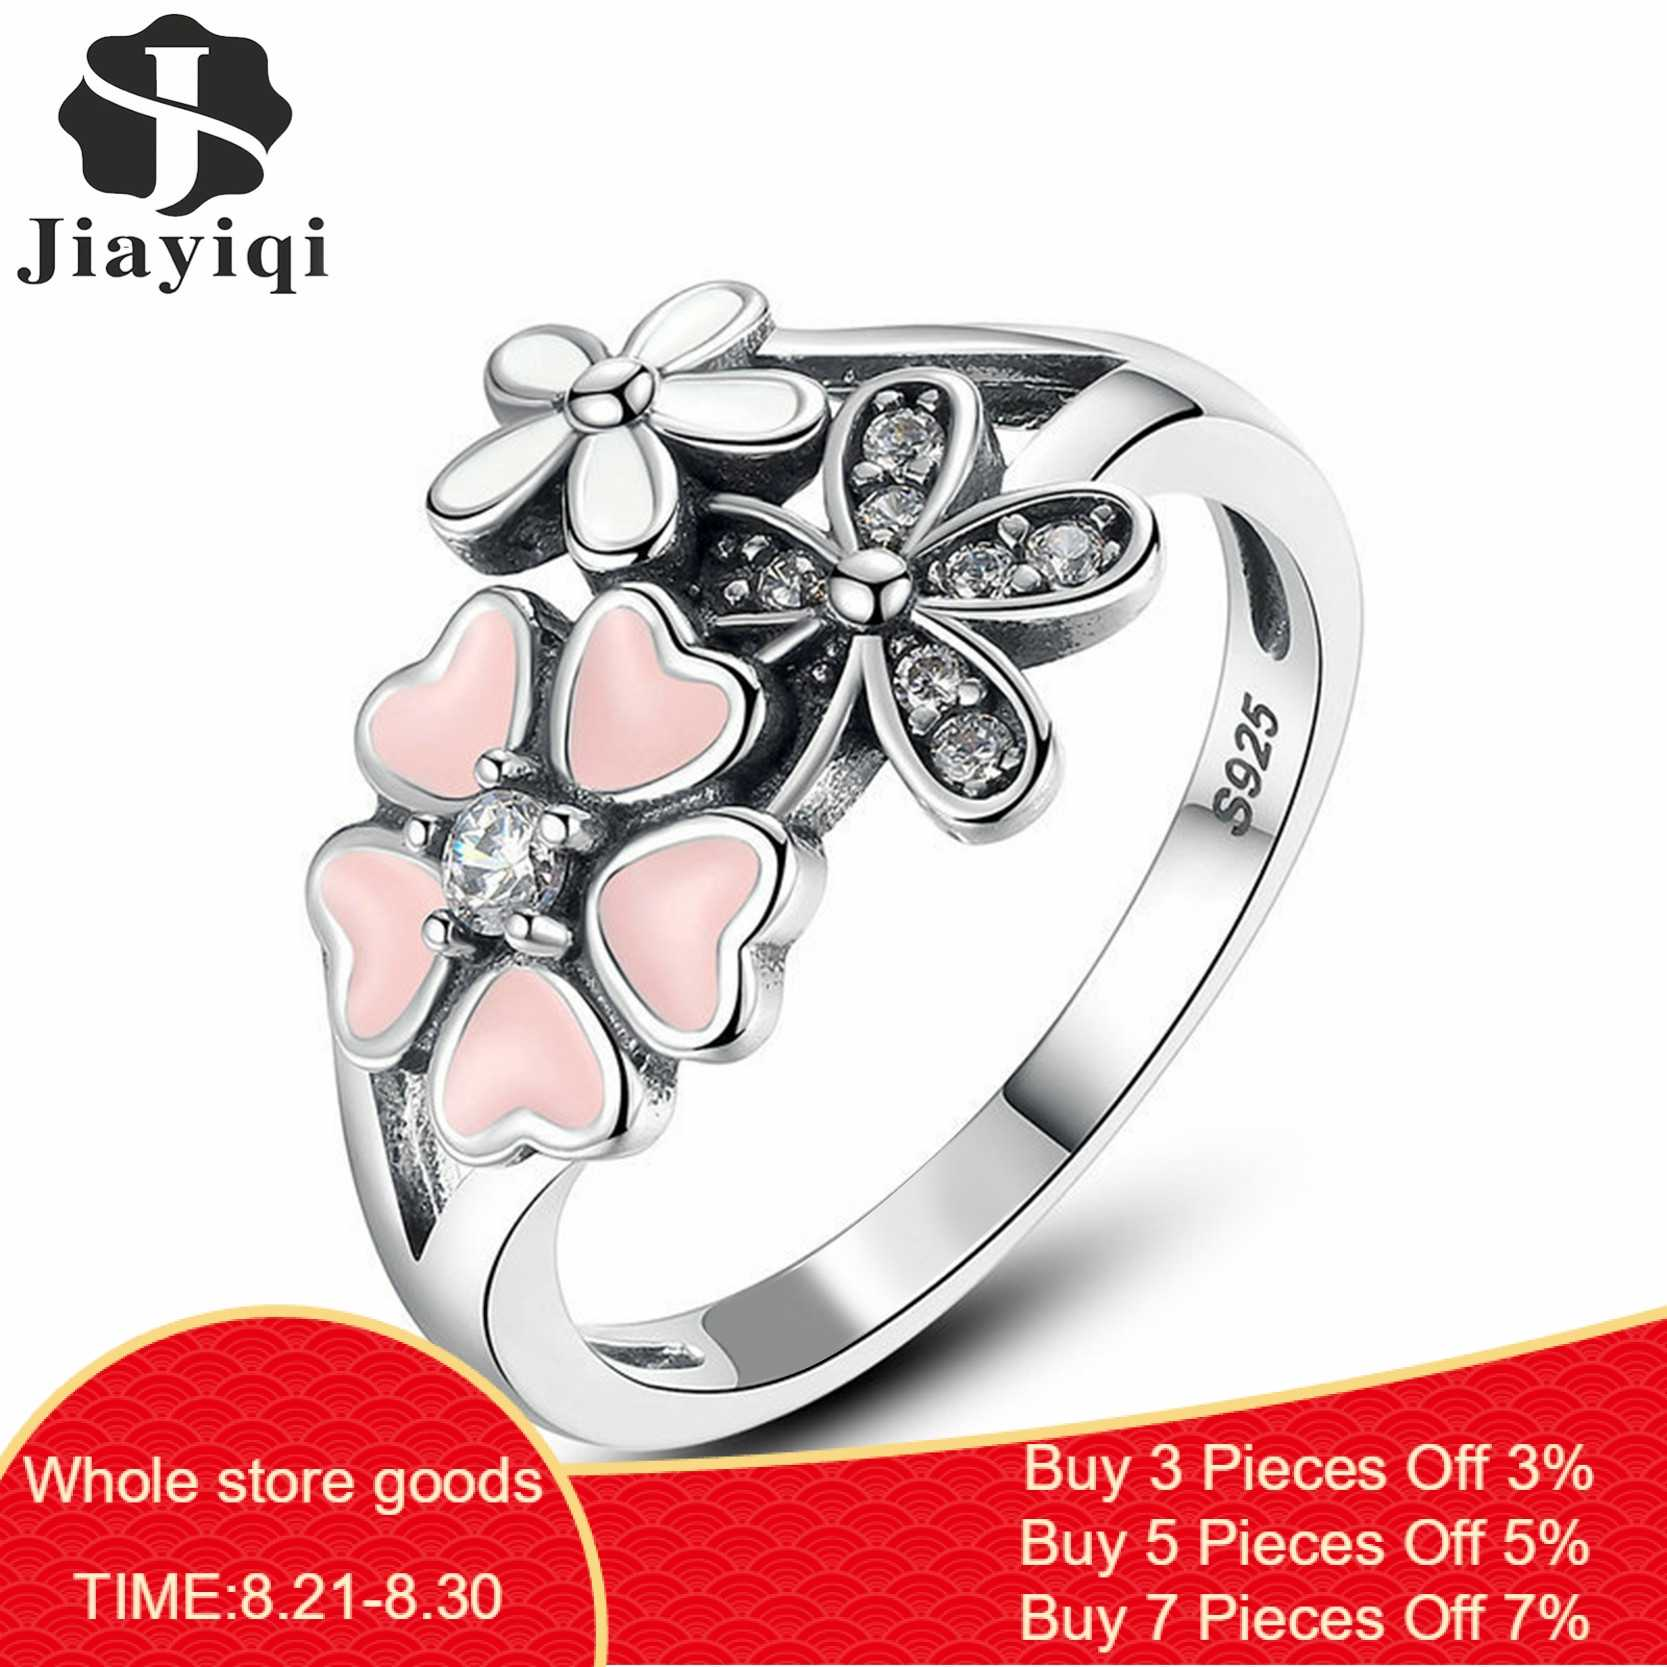 Jiayiqi Hot Sale Fashion Delicate Flower Finger Ring Silver Color Zirconia CZ Jewelry For Valentine's Day Christmas Gift 2018